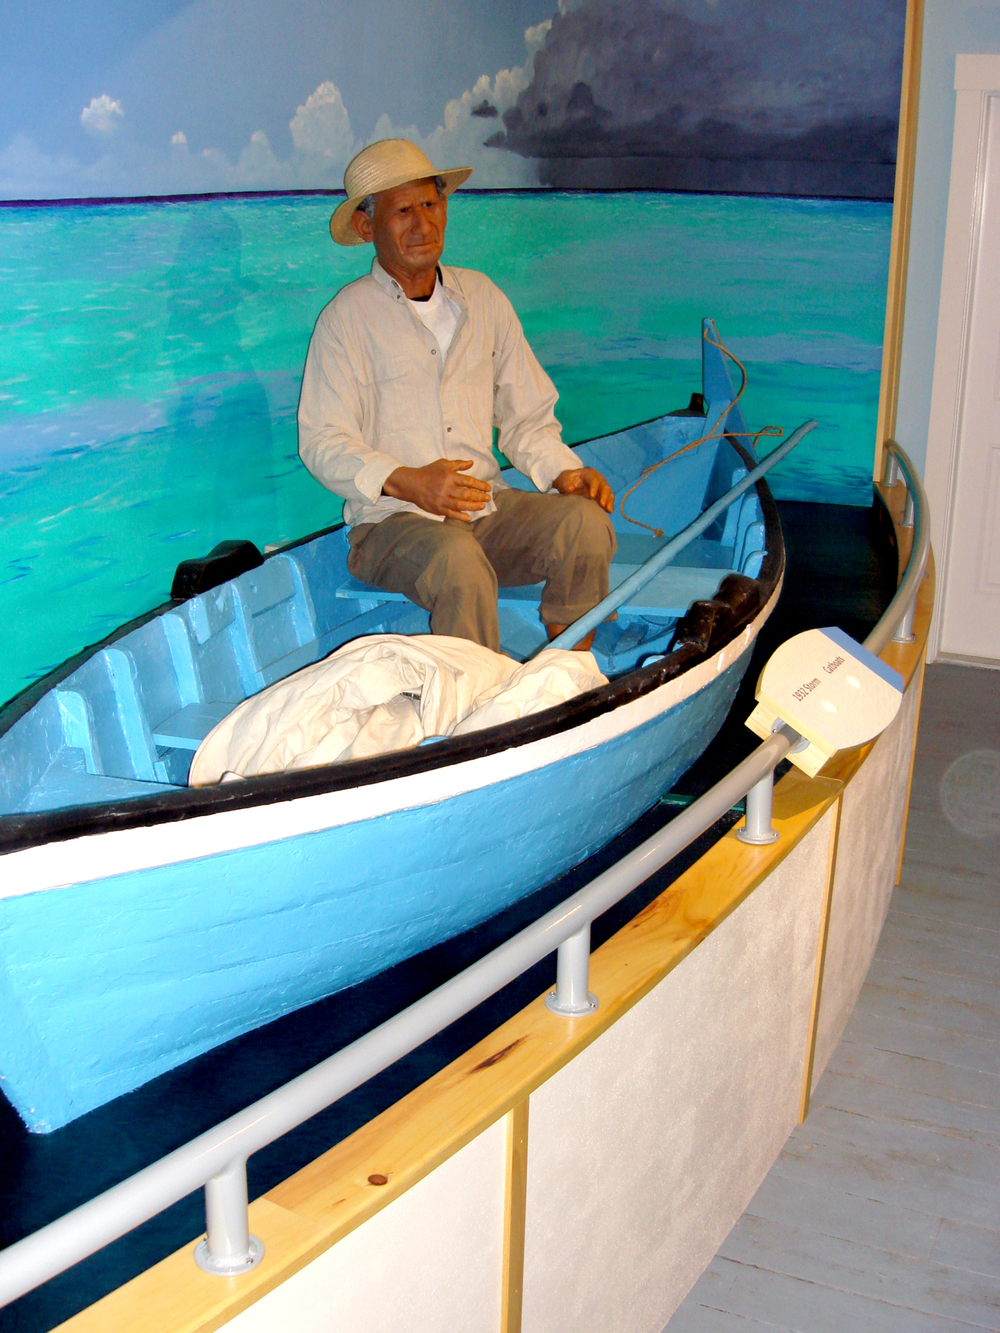 A large hand-painted mural sets the stage for the Life on the Sea exhibit. A historic fishing boat is securely displayed and features an animatronic fisherman who's audio tells historic tales of the sea.